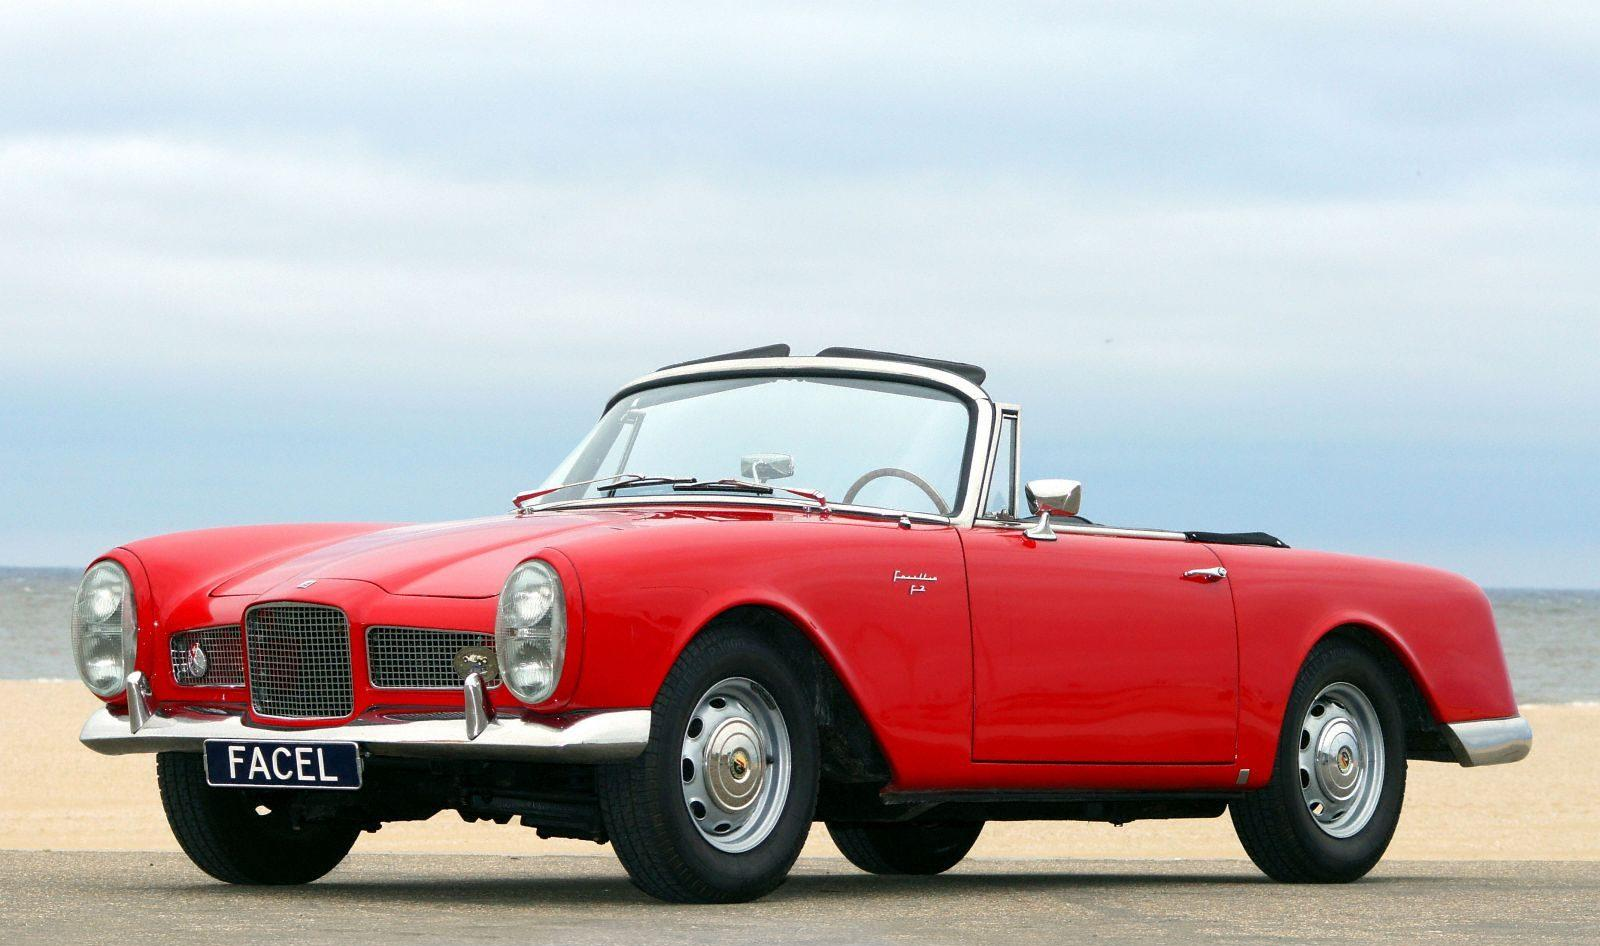 1959 Facel Vega Facellia Convertible Carsaddiction Com